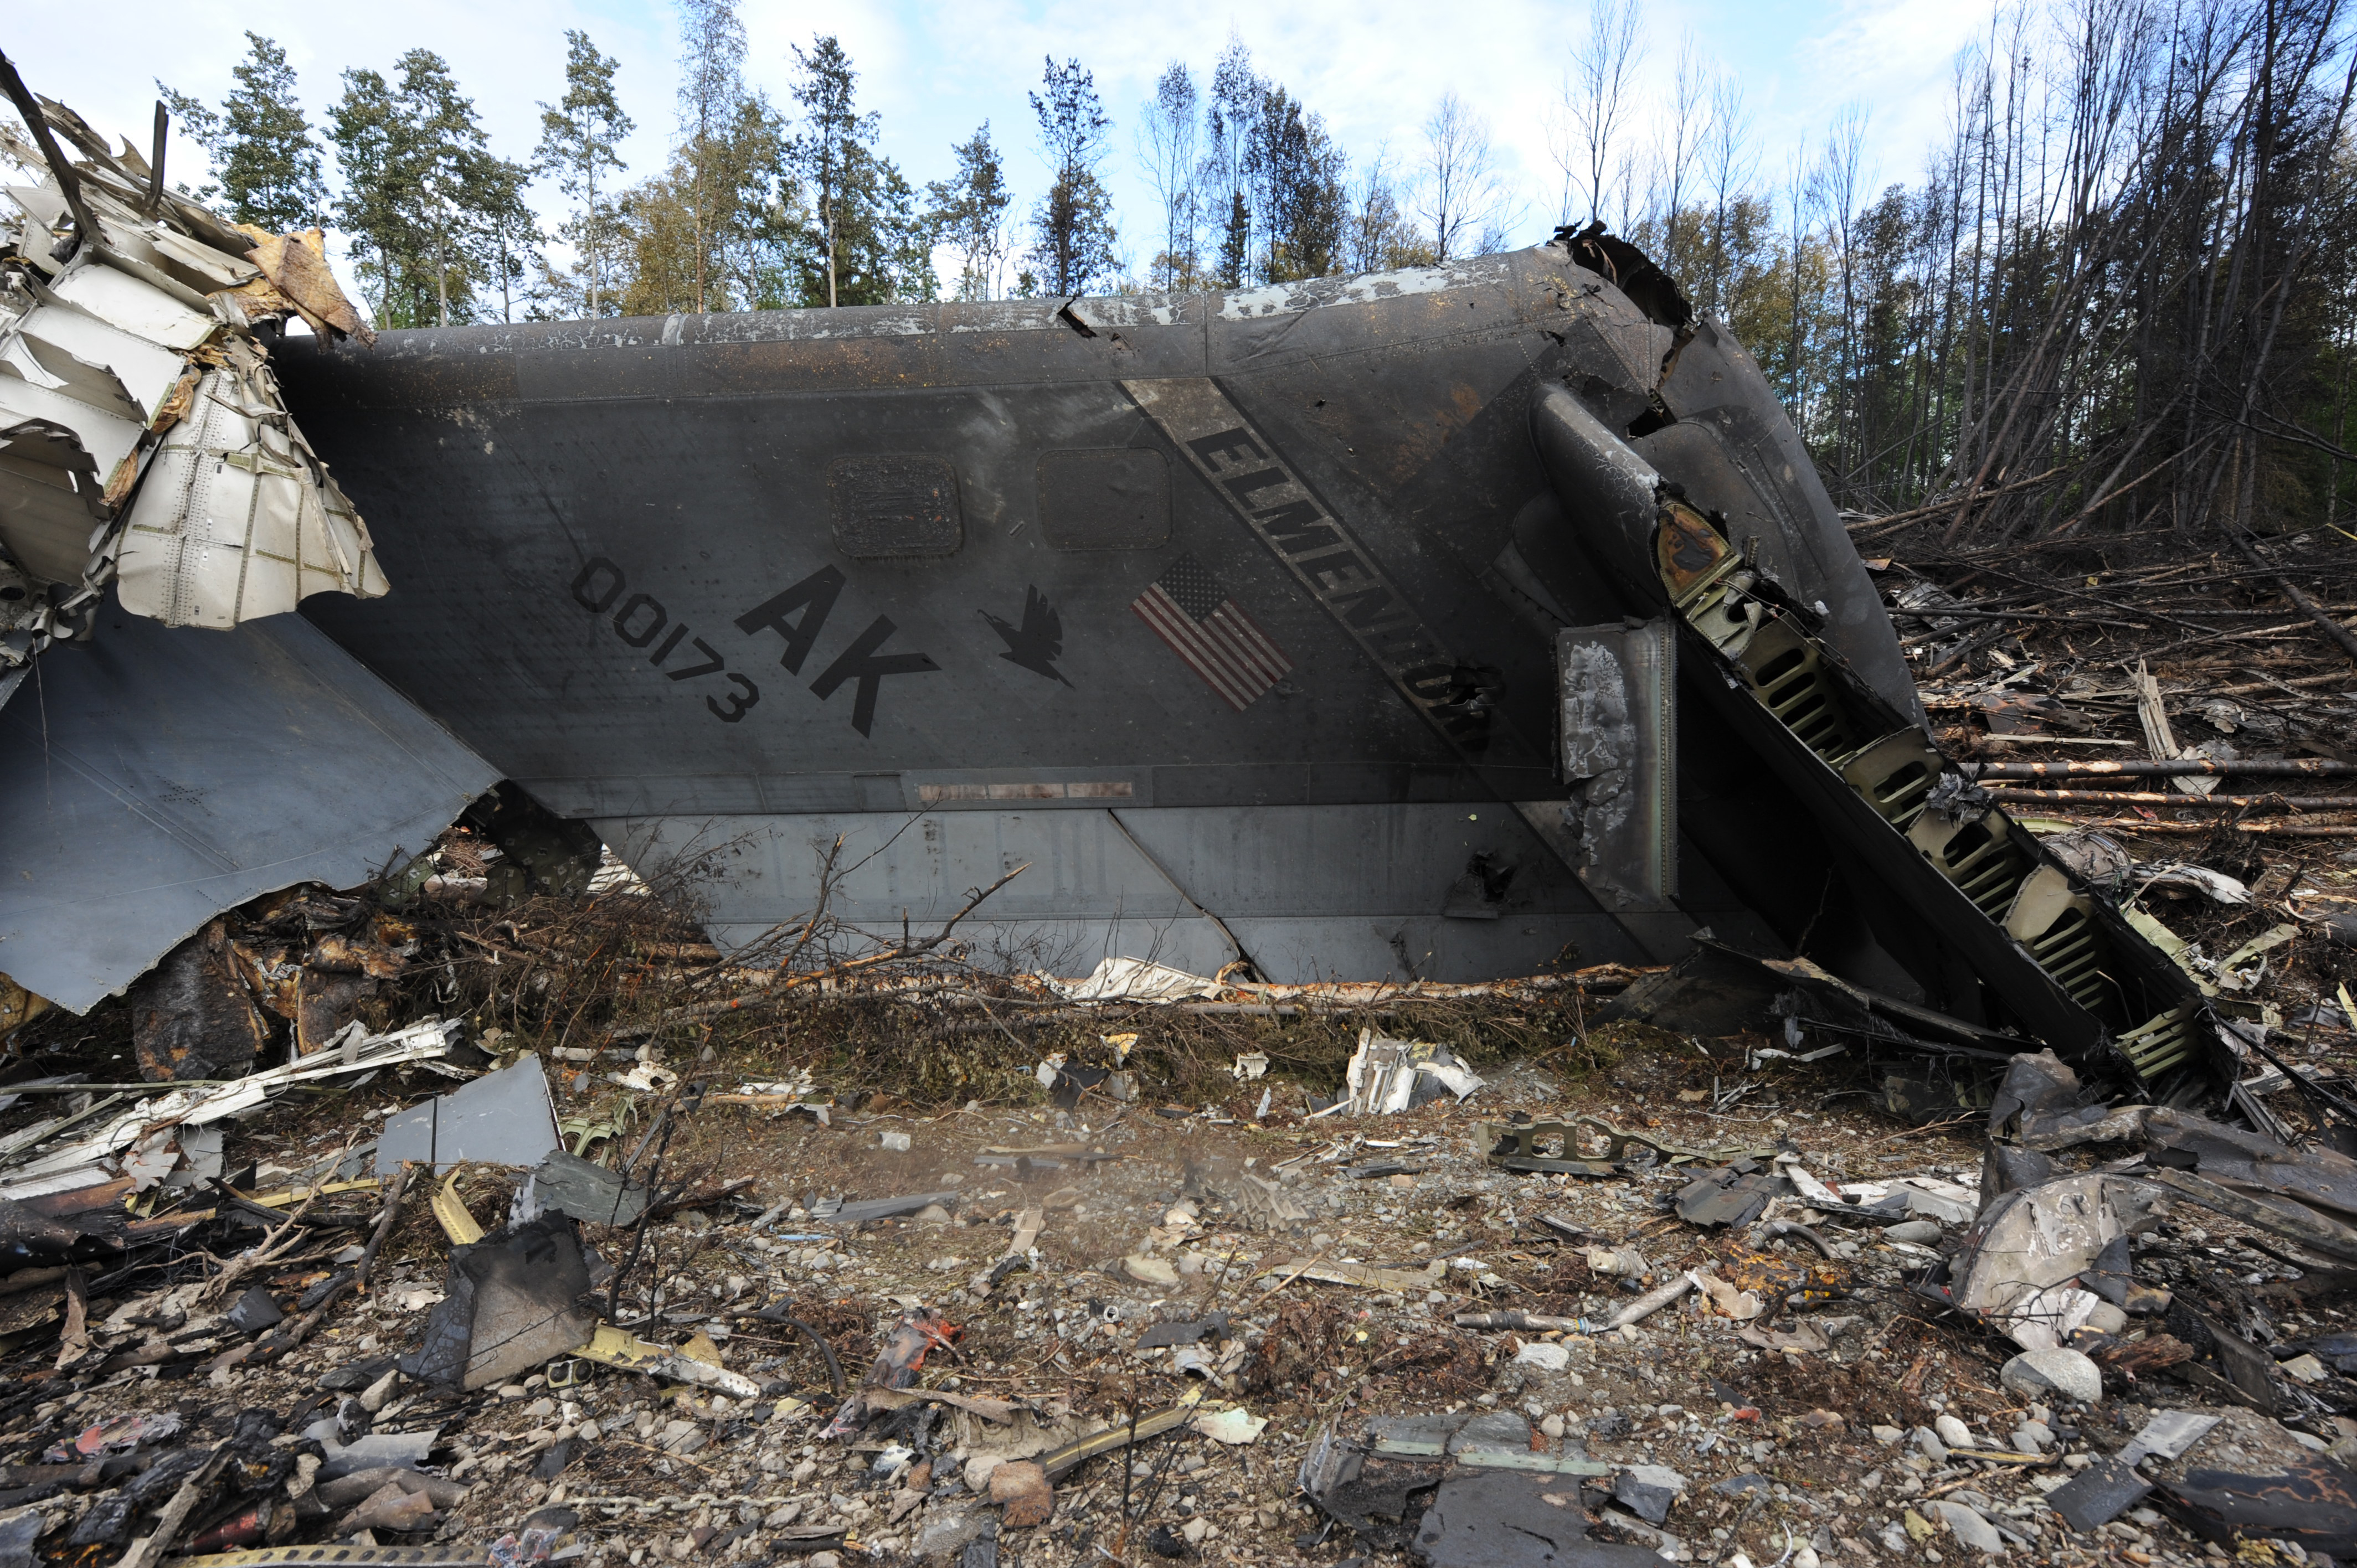 the crash of czar 52 at The book ties in that incident and the crash of czar 52 both incidents happened within days of each other the rogue b-52 stand-eval pilot.